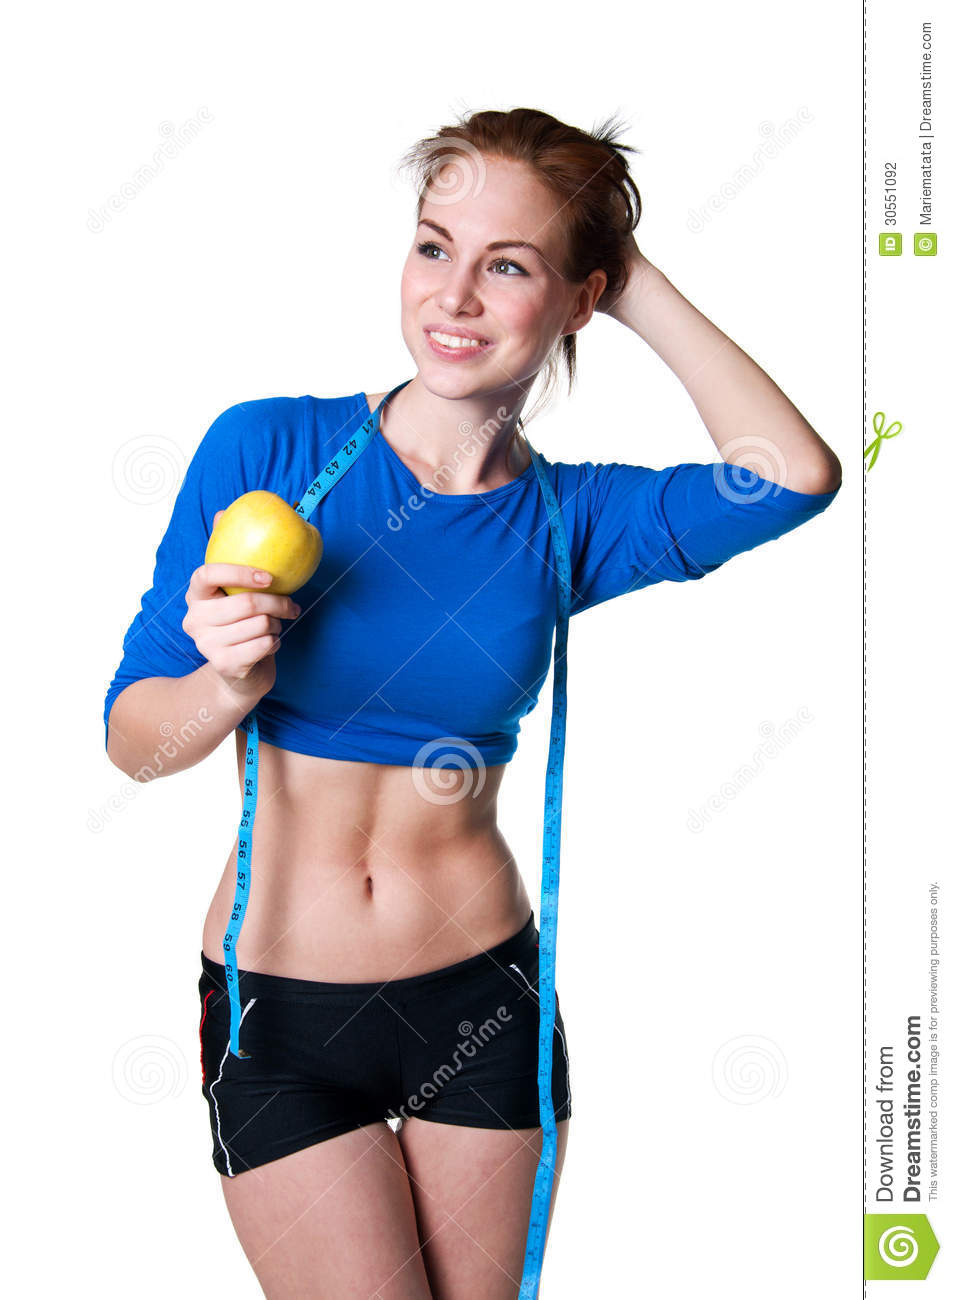 woman model wearing blue top and black shorts, holding ripe apple ...